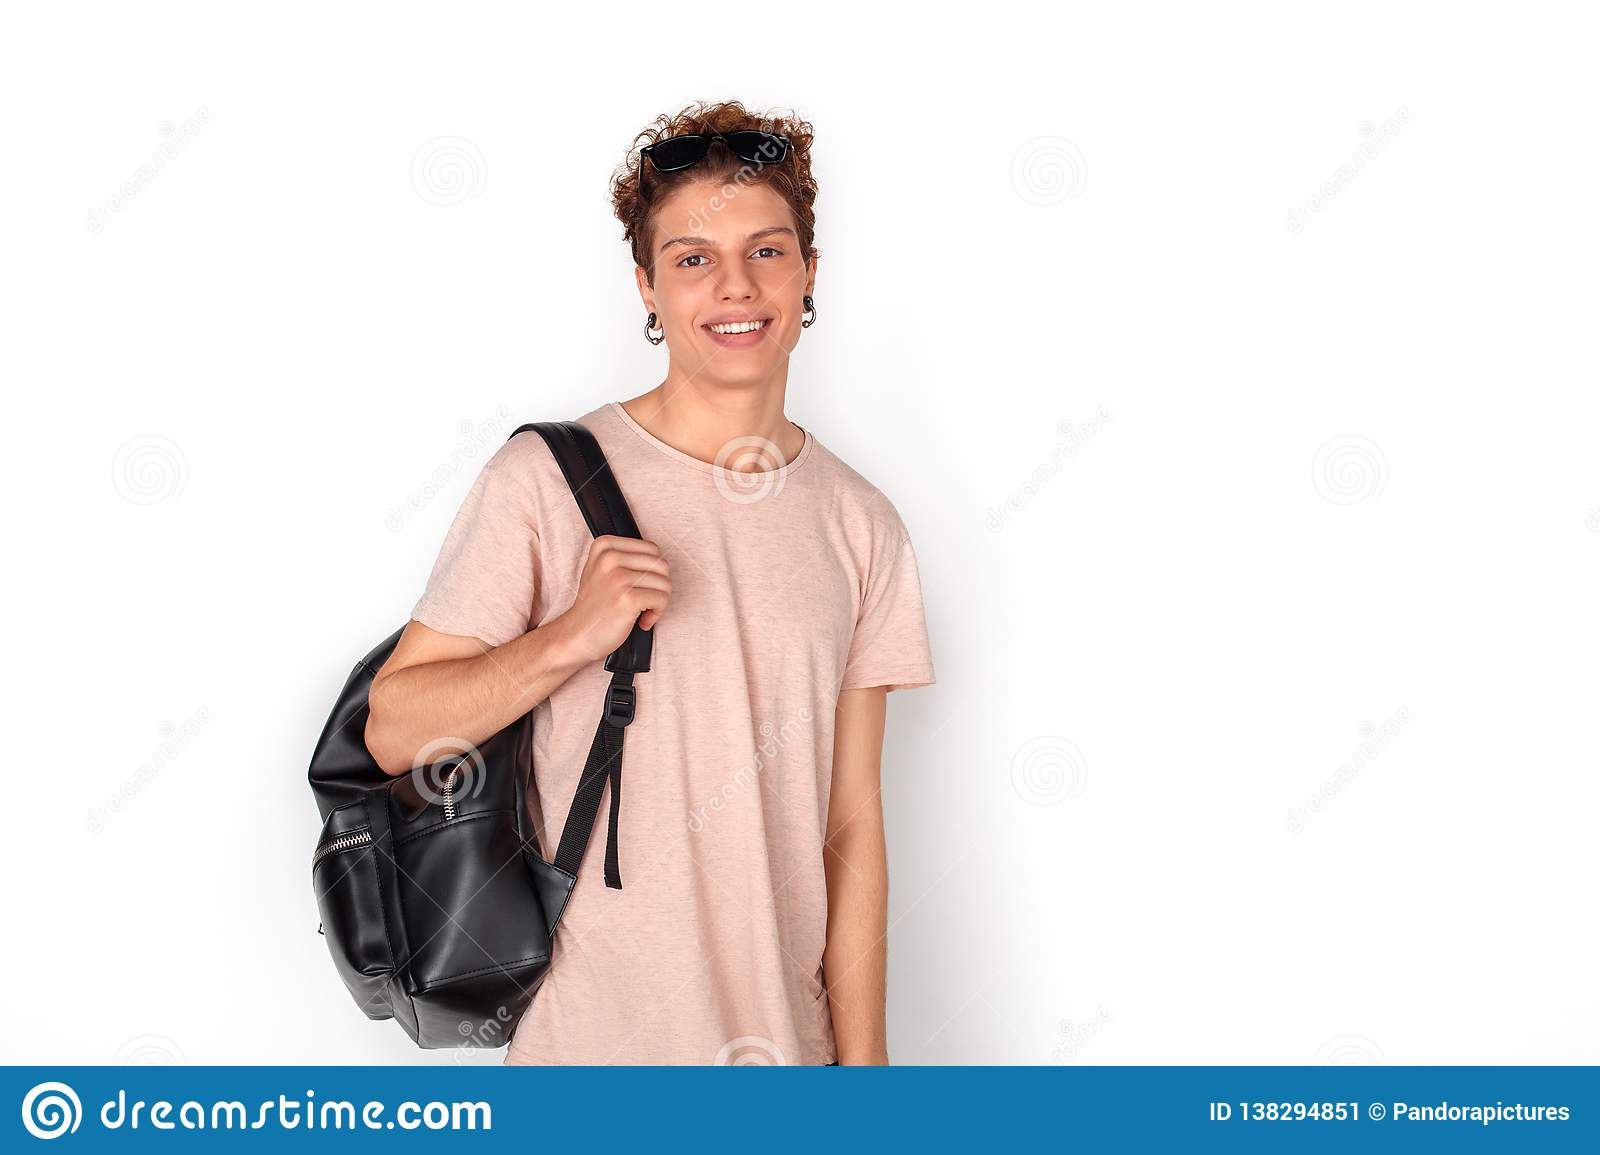 b62cdb404e404 Teenager With Earrings Carrying Backpack Studio Standing Isolated On ...